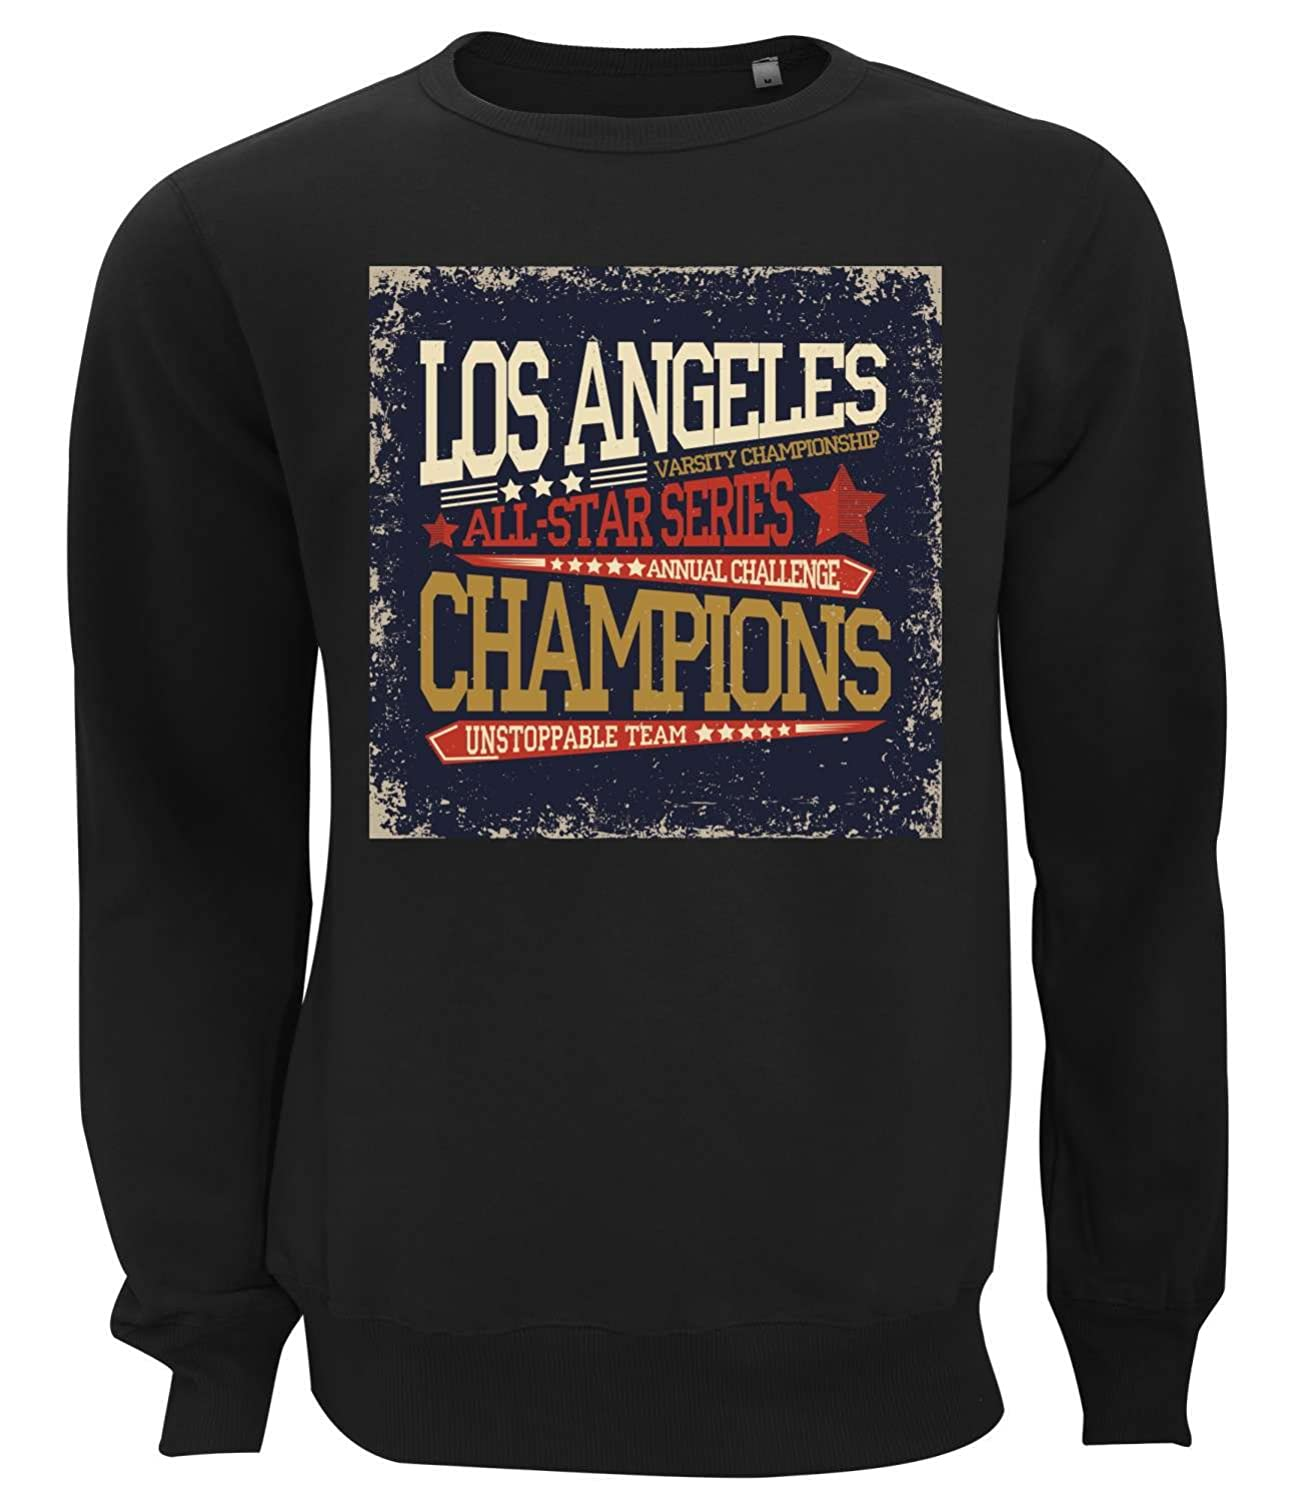 Vintage Sport - Los Angeles All-Star Series Champions Women's Unisex Sweatshirt